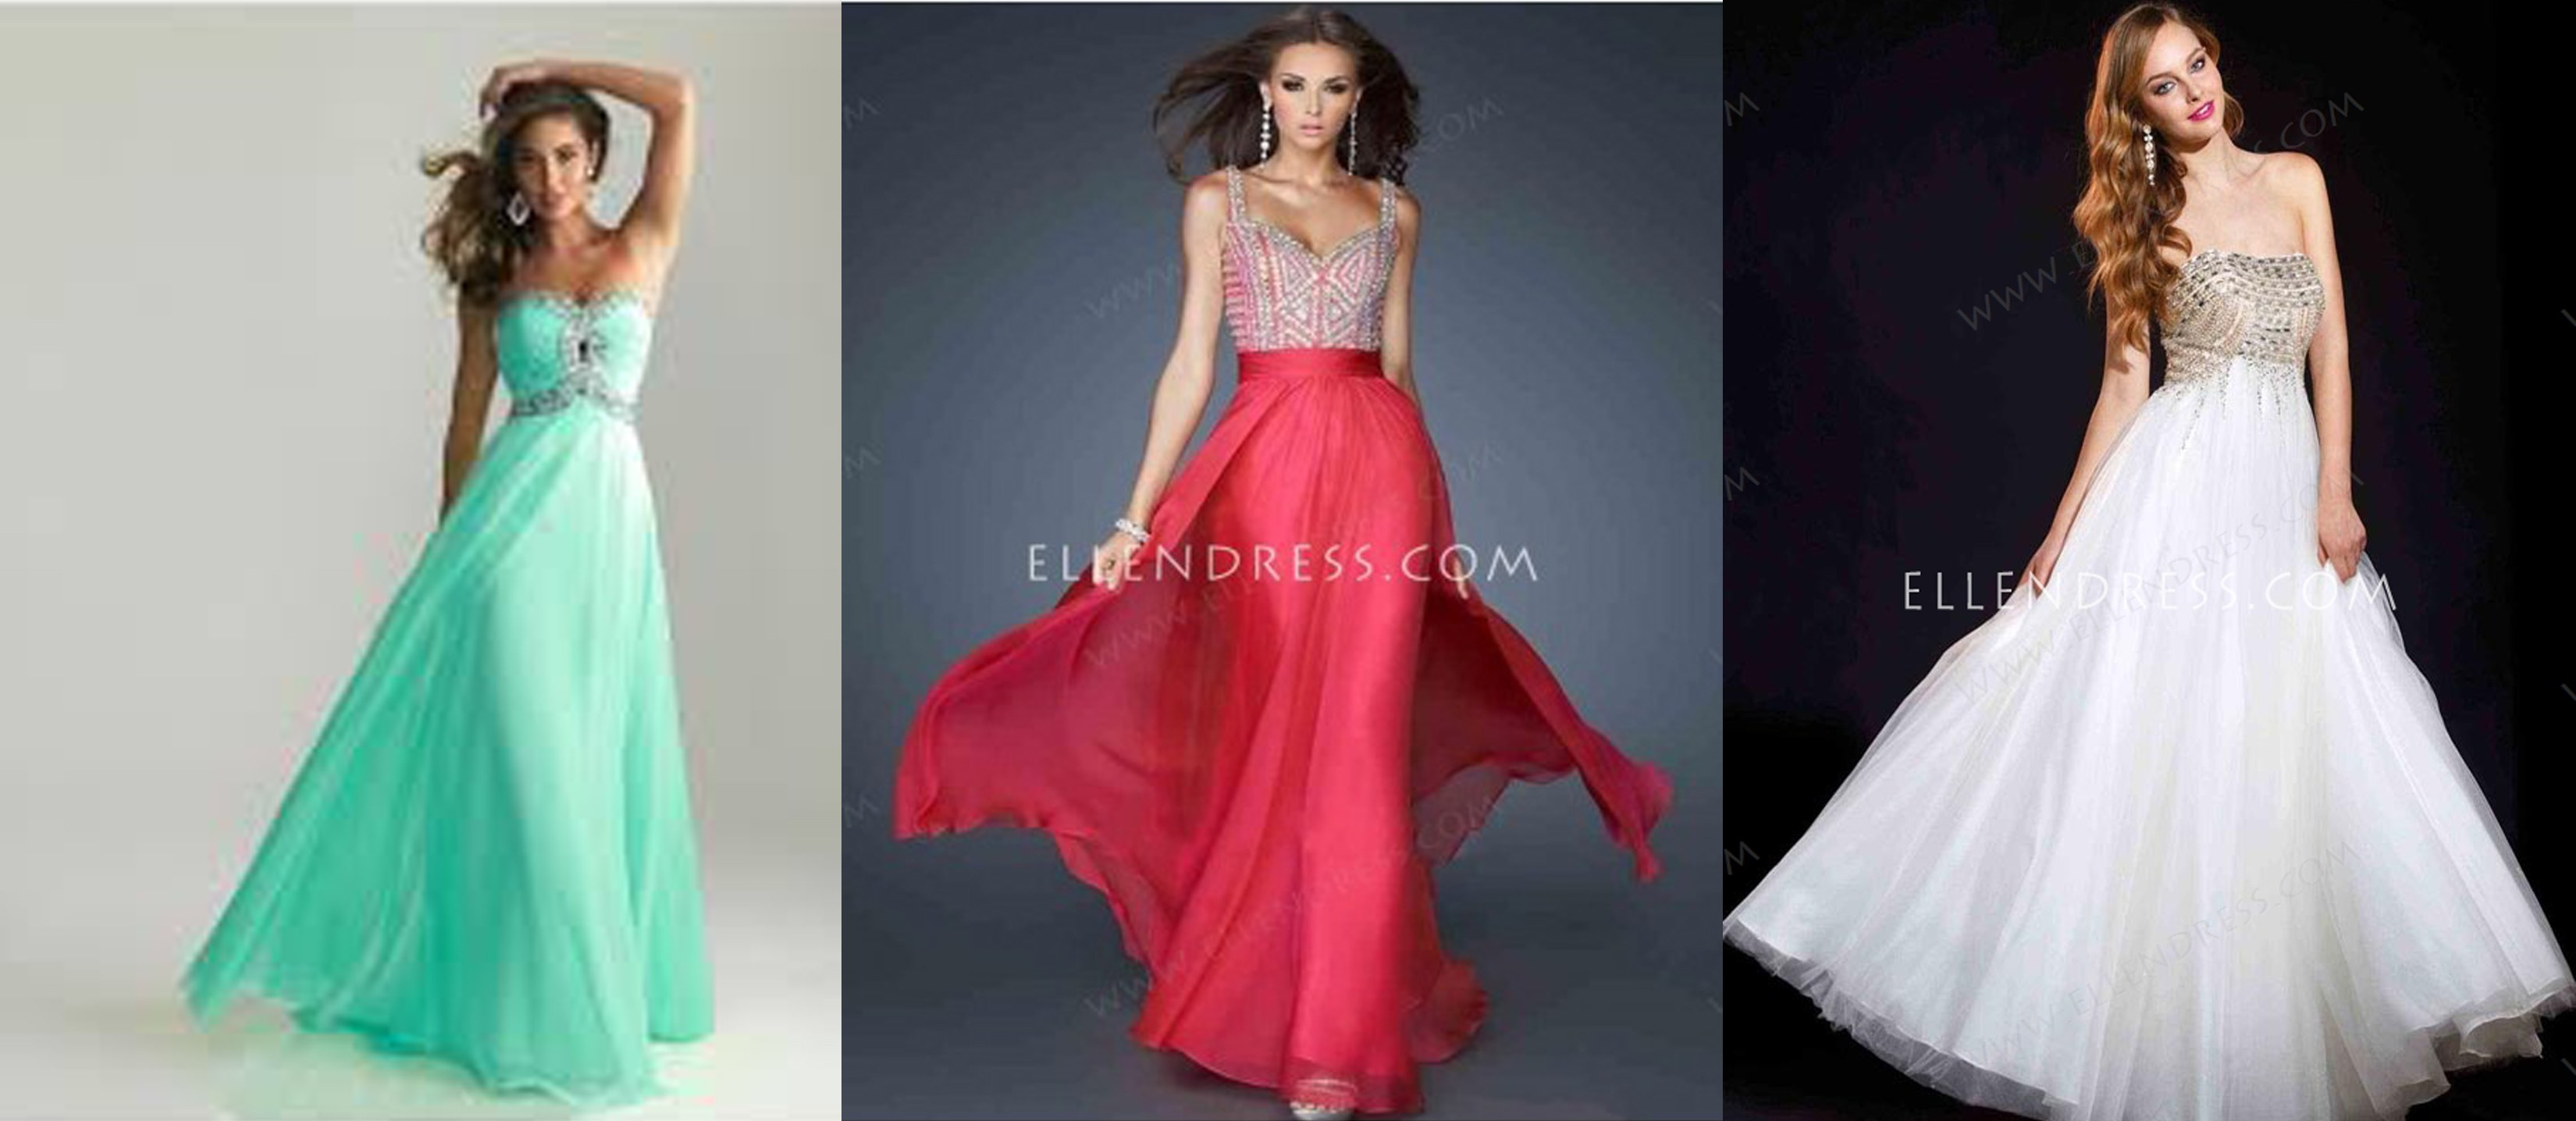 Prom/Evening Dress Guide featuring 1dress.co.uk – Adolescent Chic